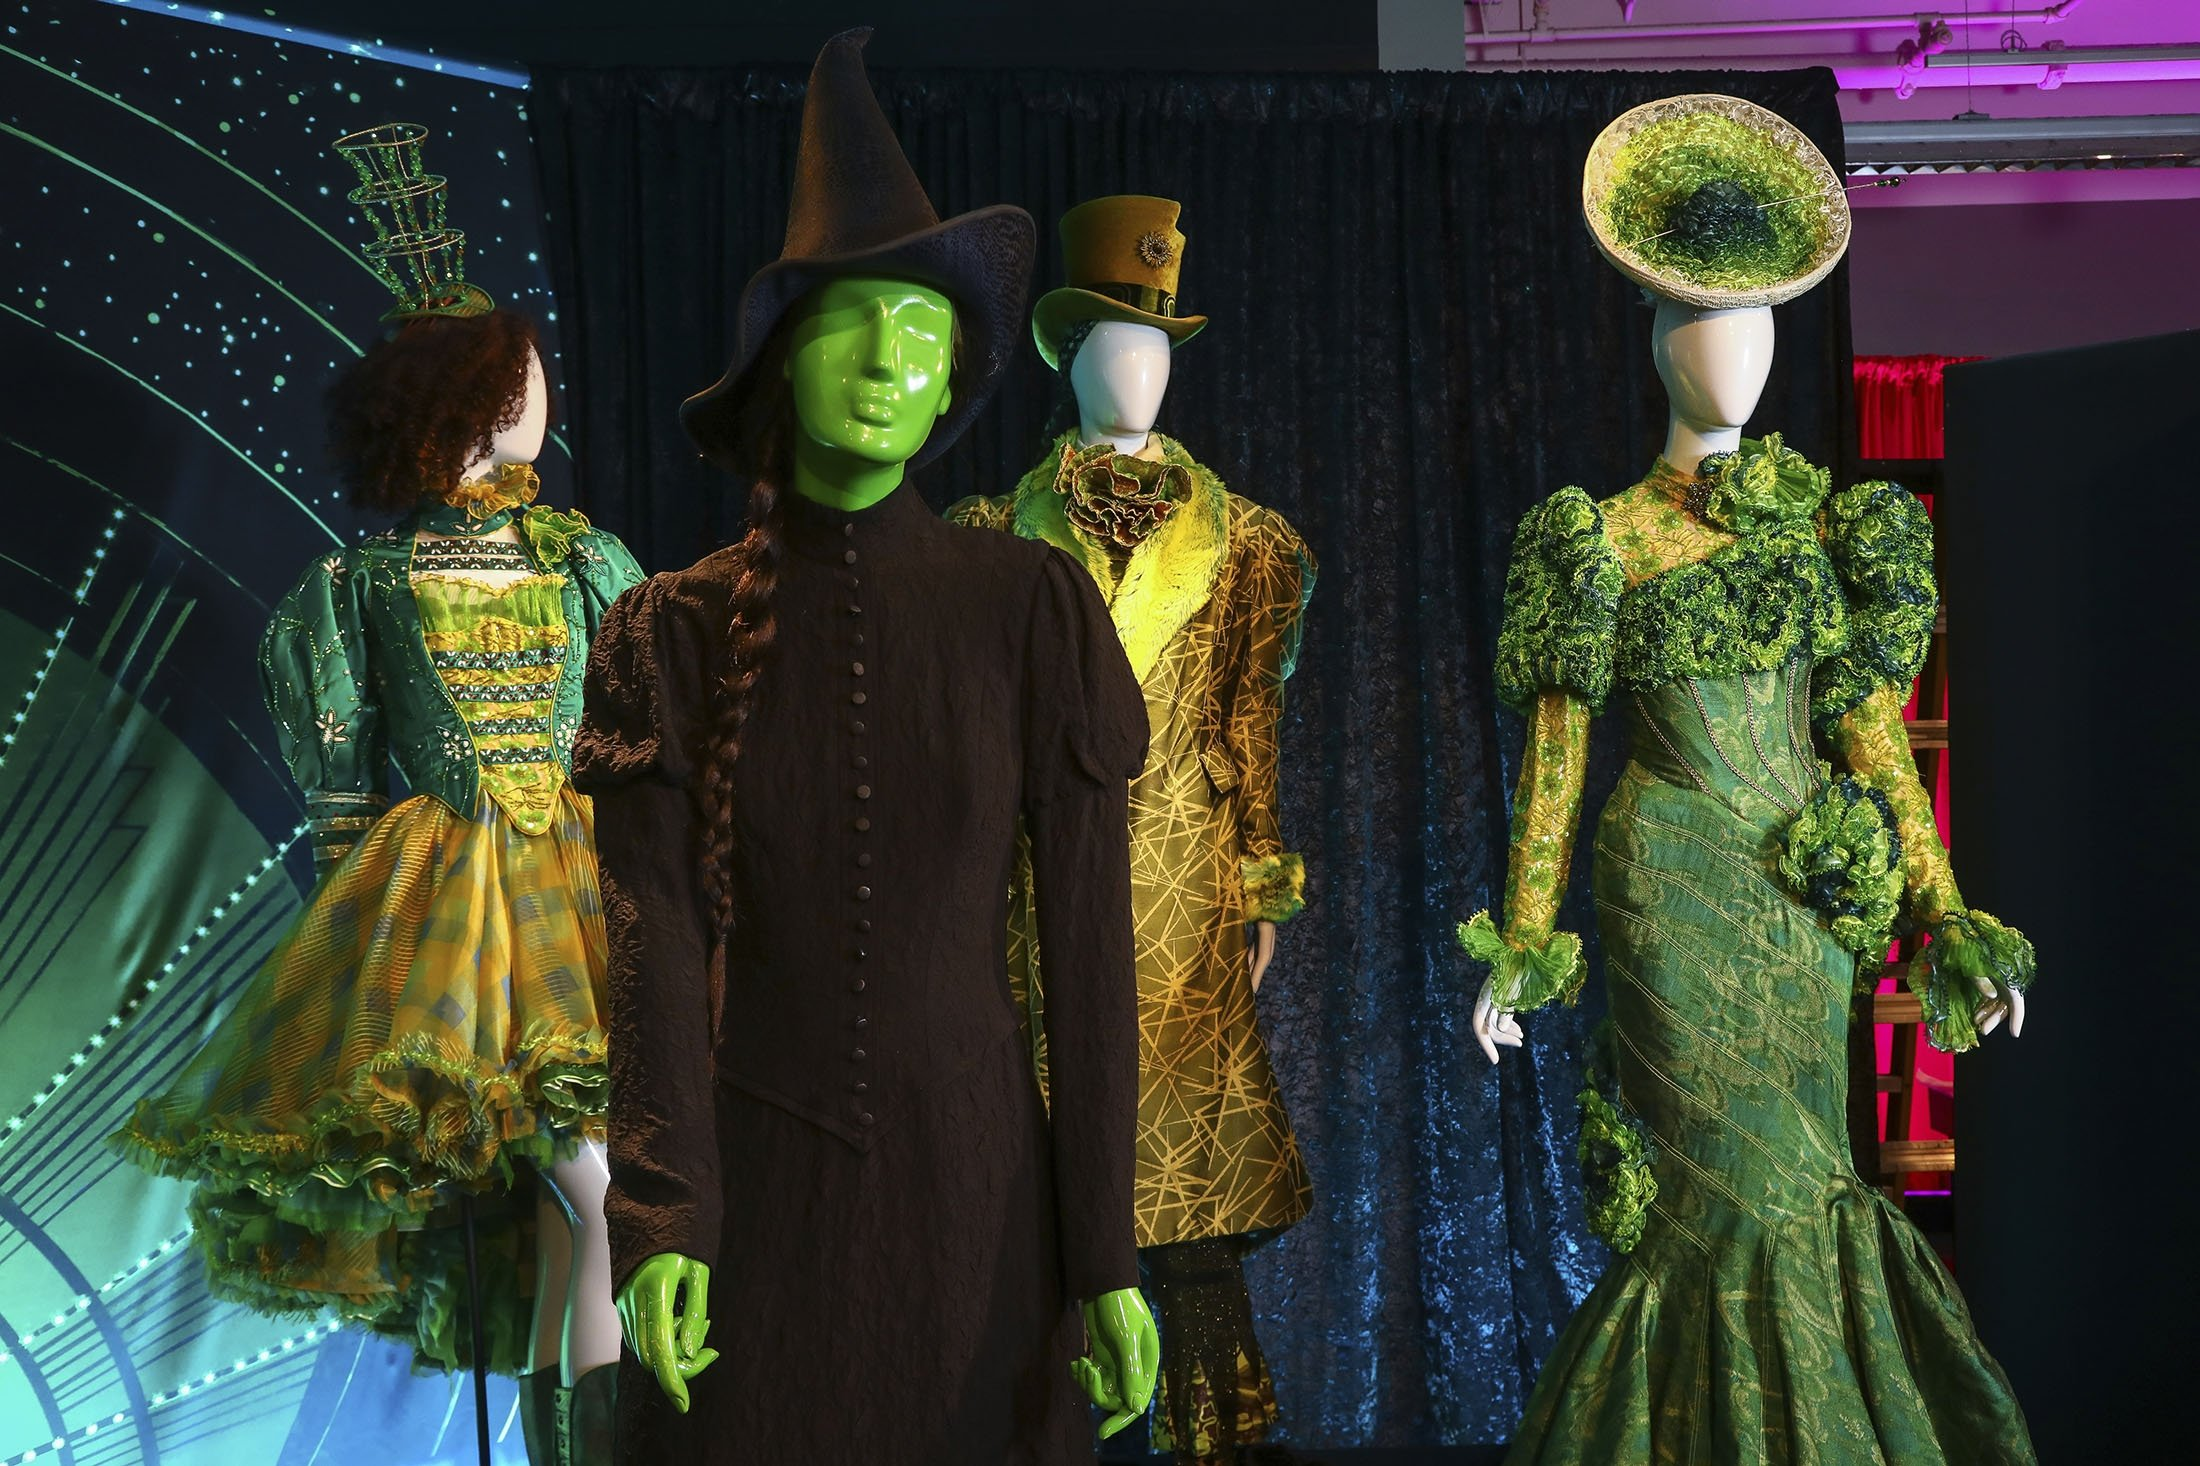 Costumes from the Broadway musical 'Wicked' are displayed at the 'Showstoppers! Spectacular Costumes from Stage & Screen' exhibit in Times Square, New York, U.S., Aug. 2, 2021. (AP Photo)